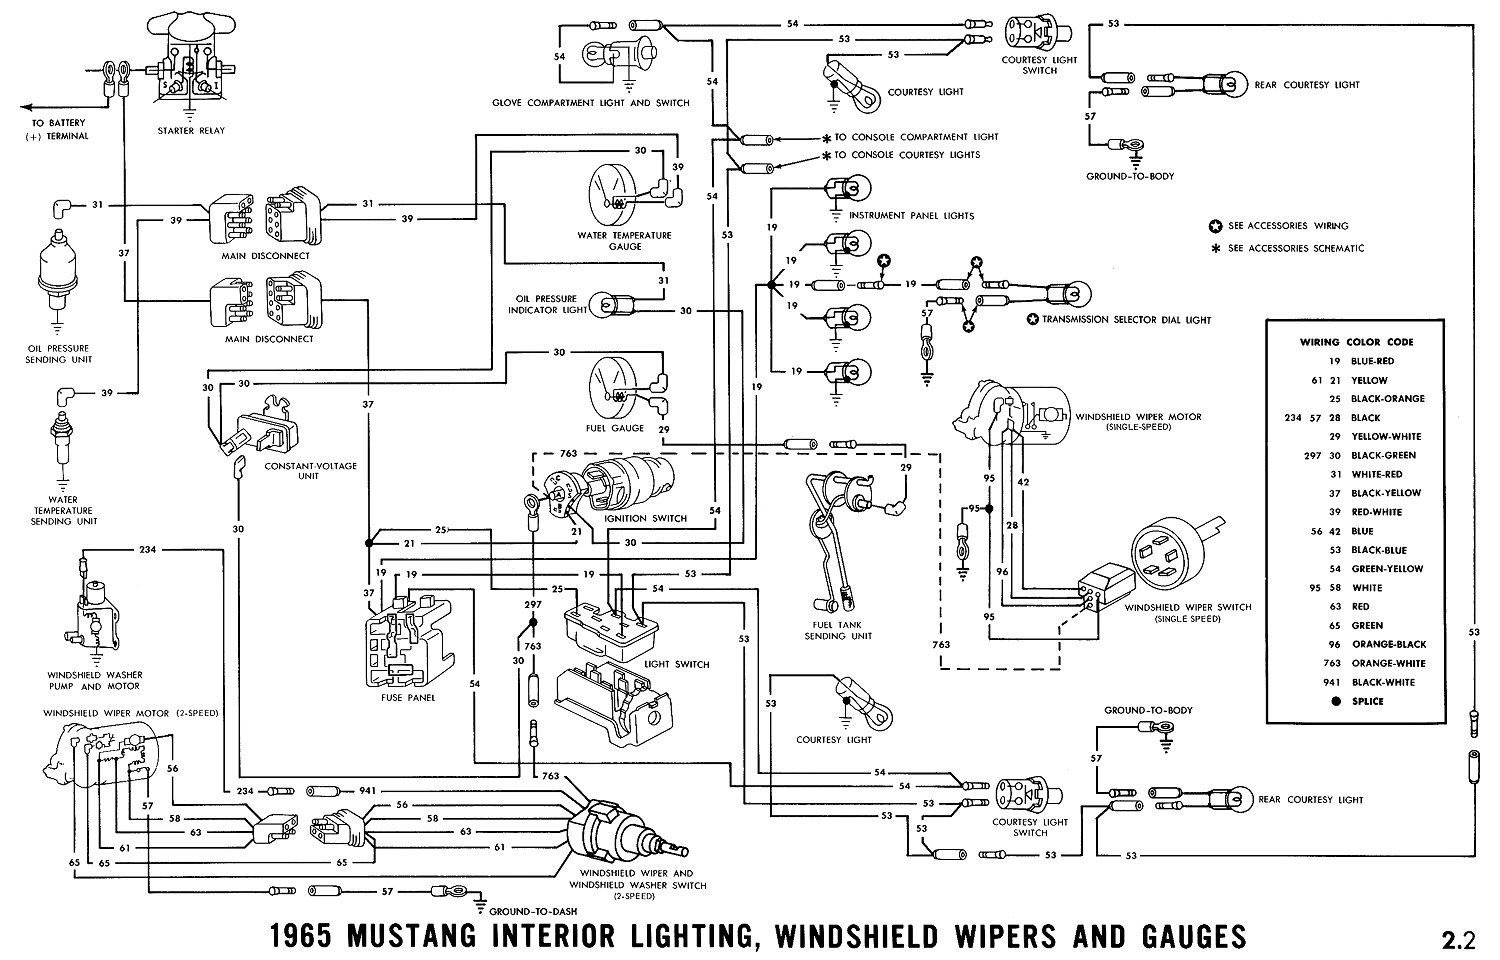 1965g 1965 mustang wiring diagram 1965 lincoln wiring diagram \u2022 wiring  at alyssarenee.co